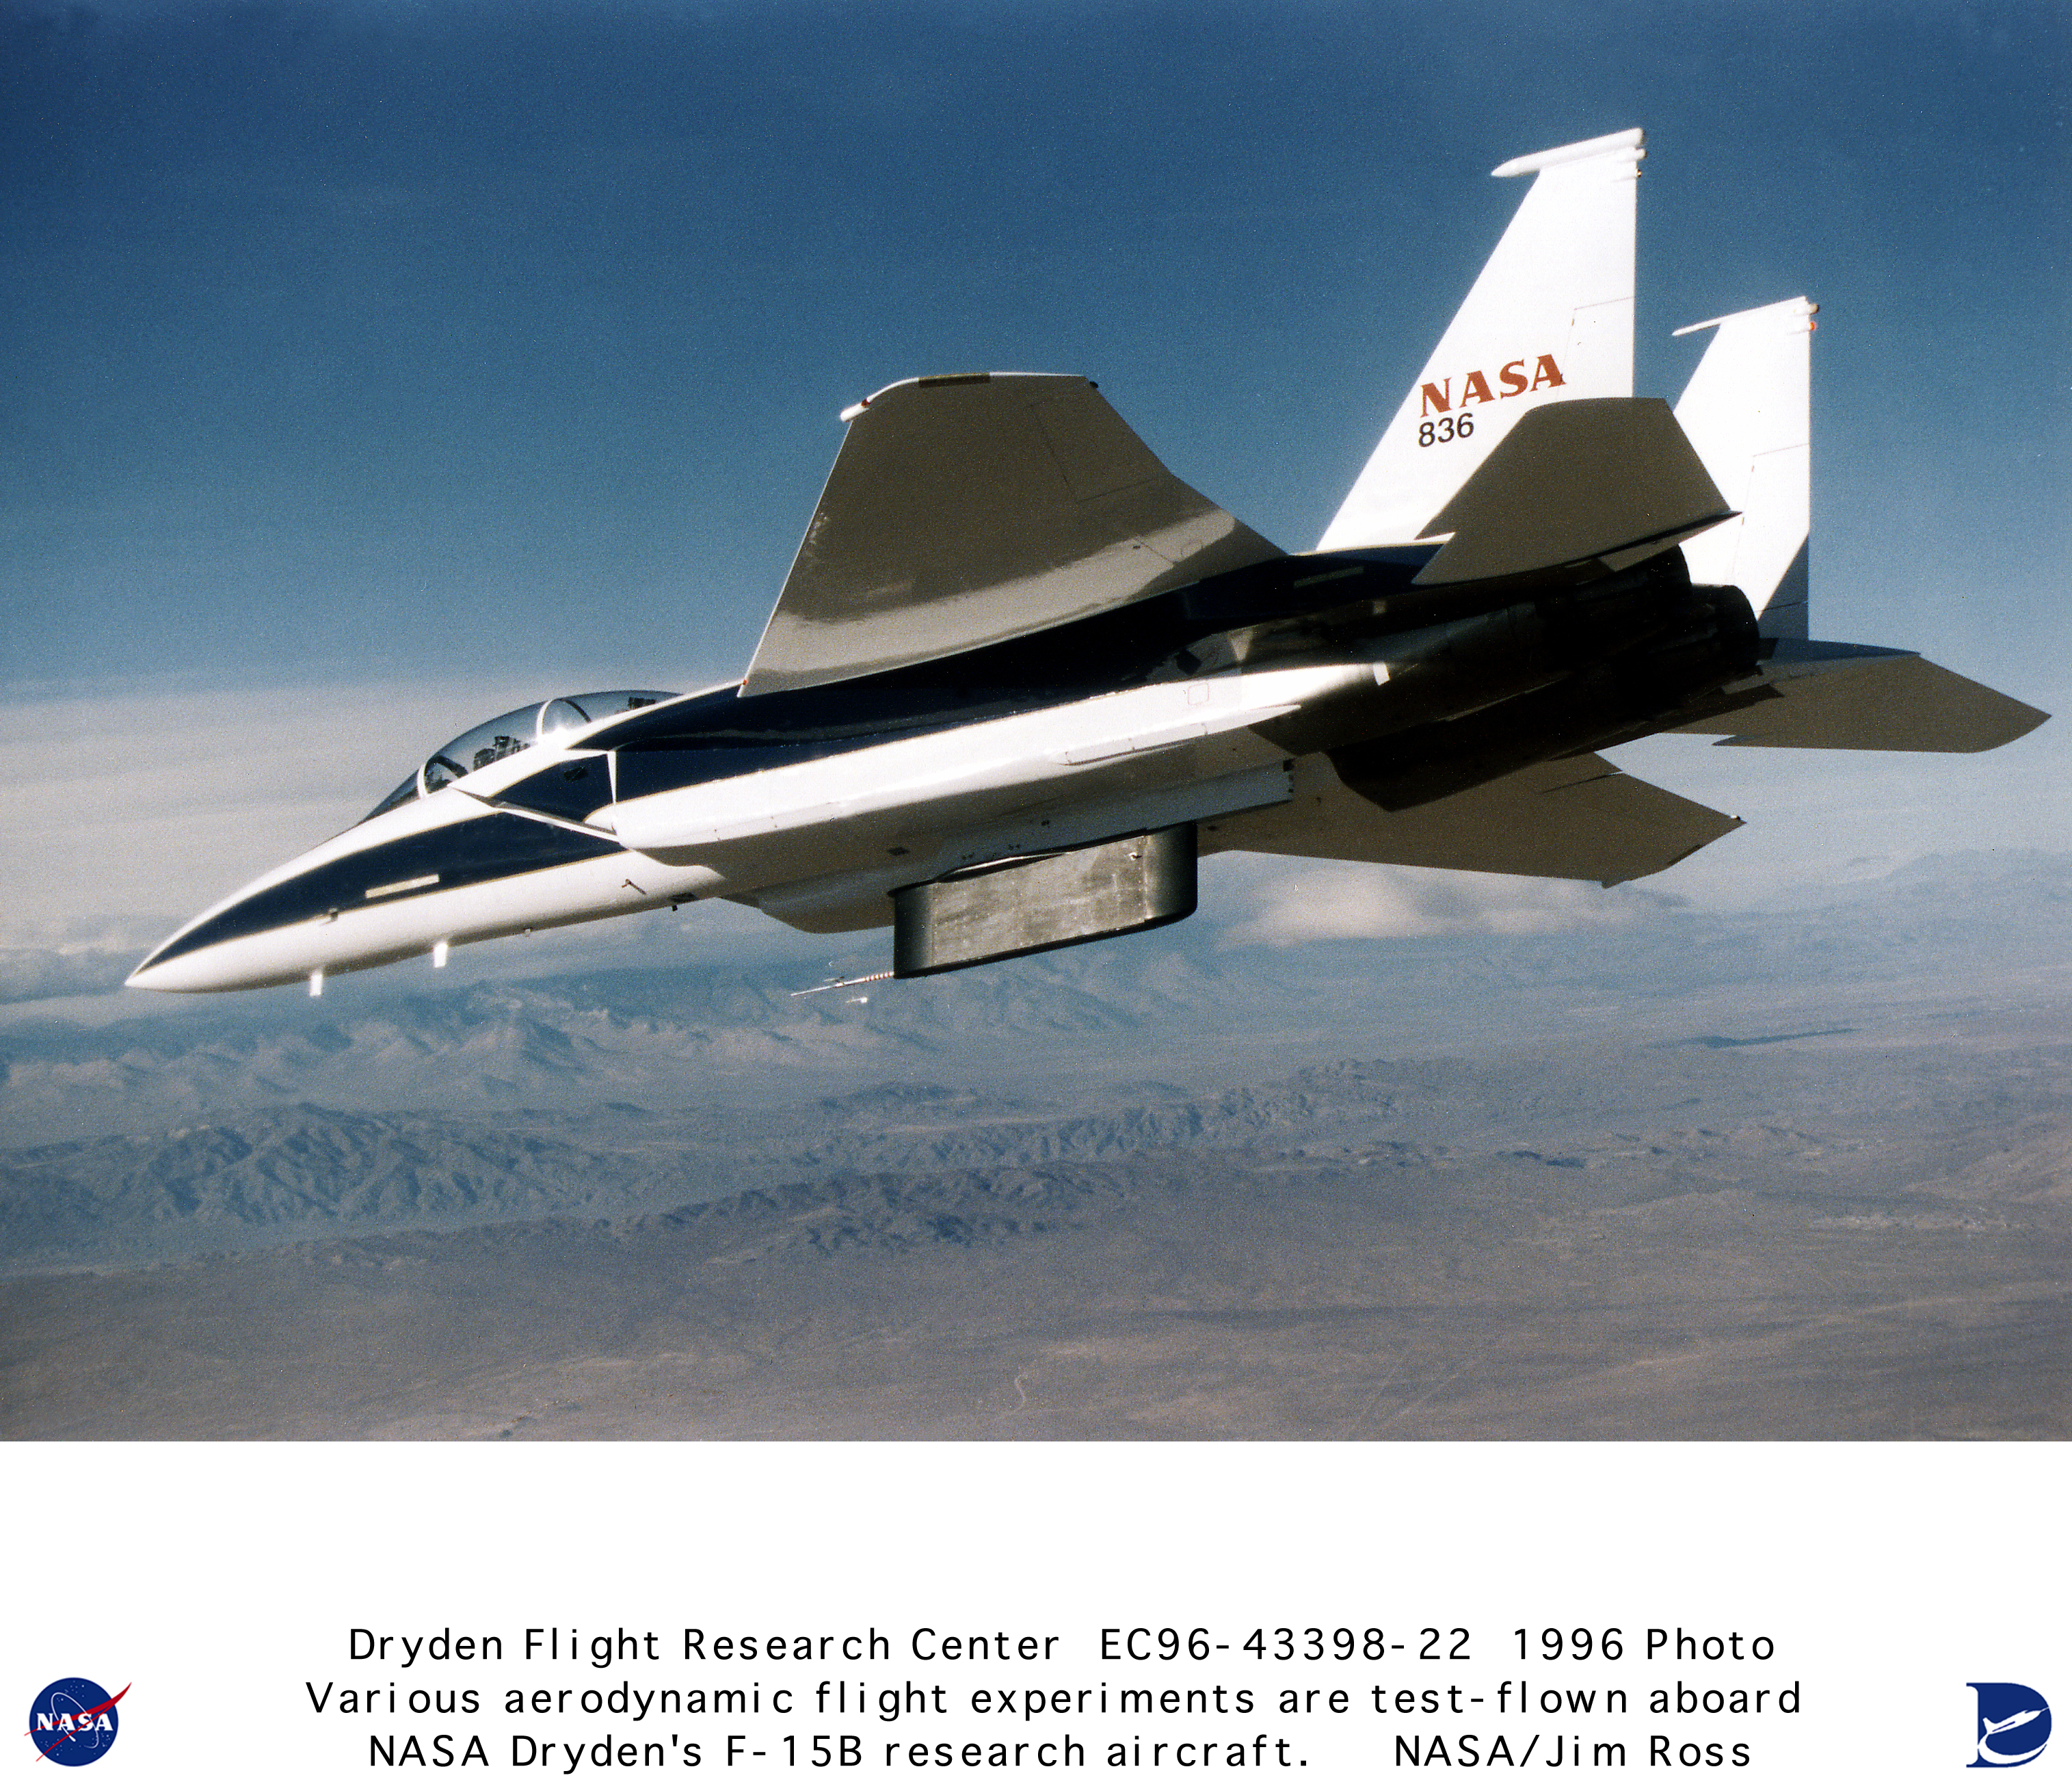 nasa fighter aircraft - photo #16